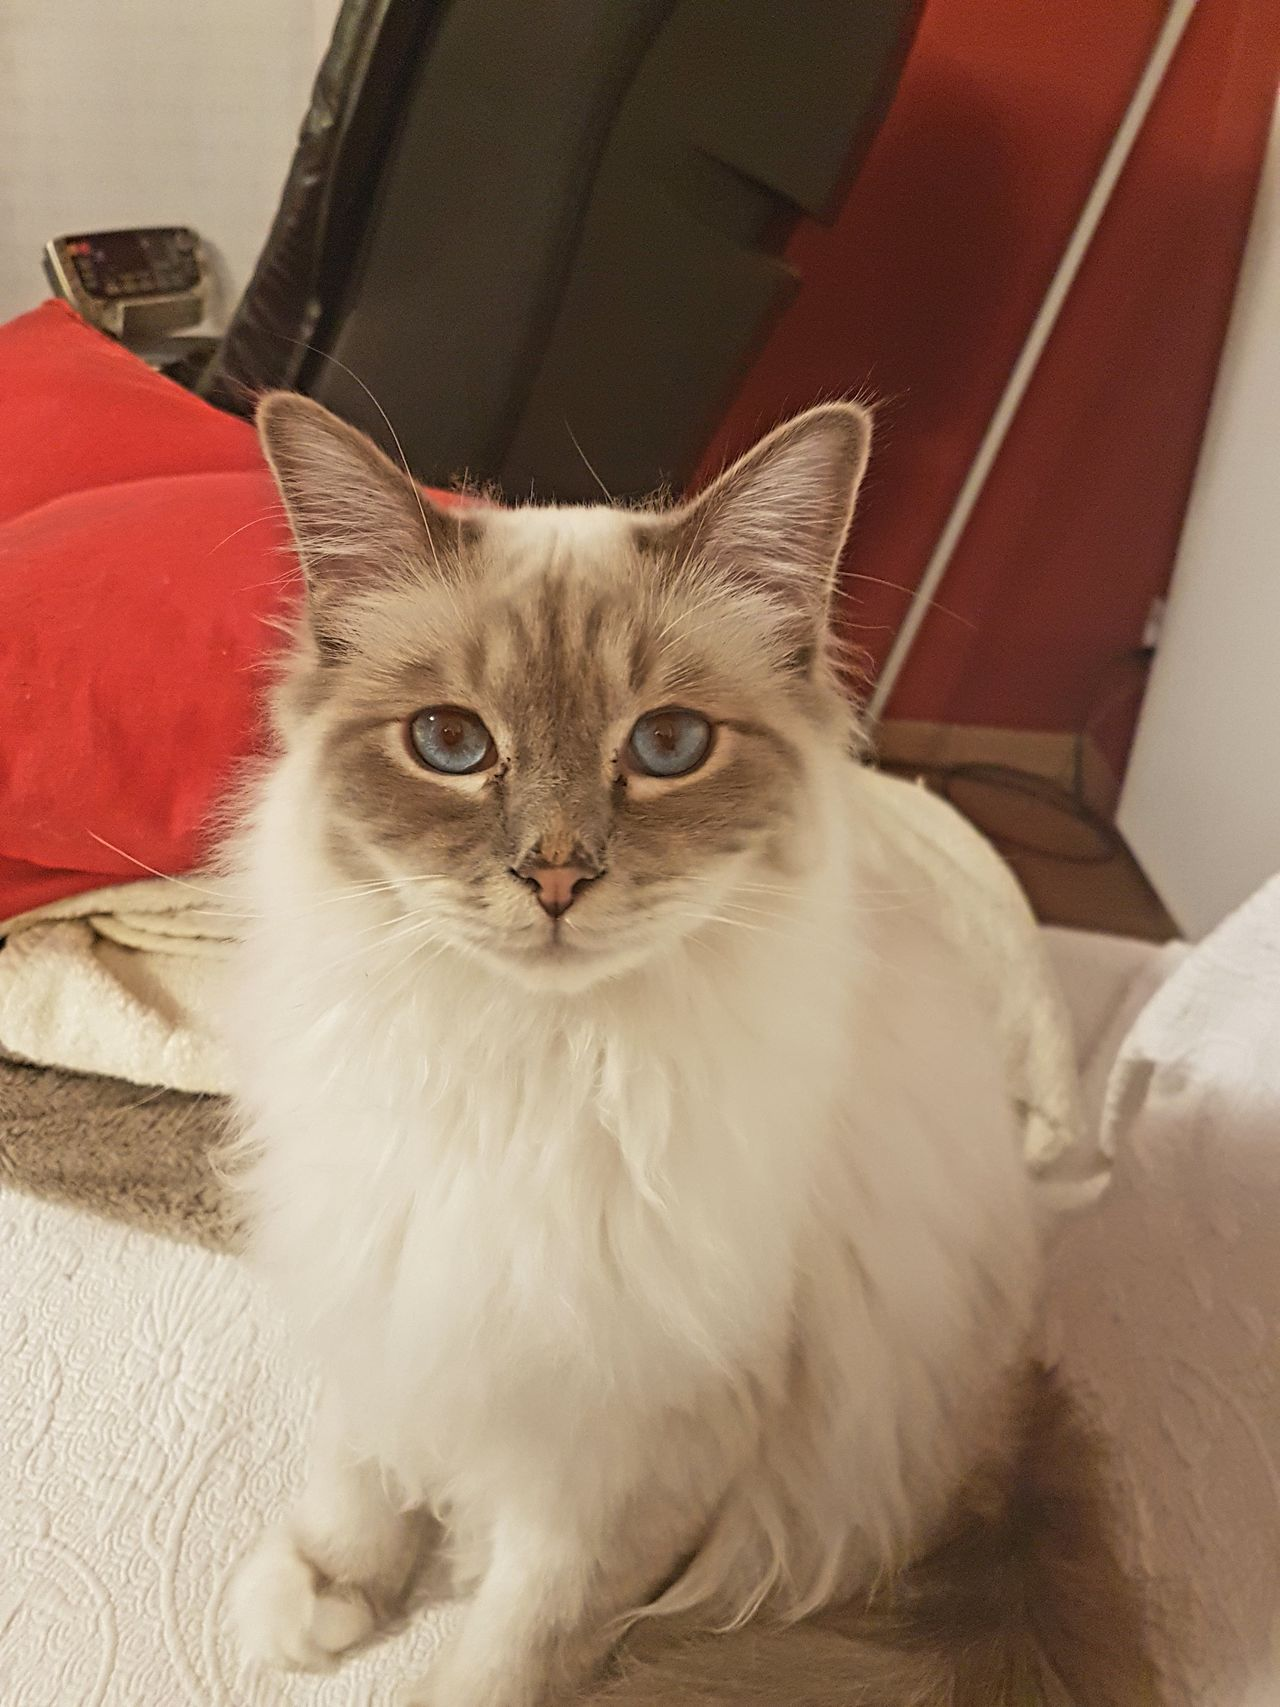 Domestic Cat Looking At Camera Pets Domestic Animals Portrait One Animal Mammal Animal Themes Feline Front View Whisker No People Indoors  Close-up Katze Cat Birman Cat Birman  Heilige Birma Katze Frontal EyeEmNewHere